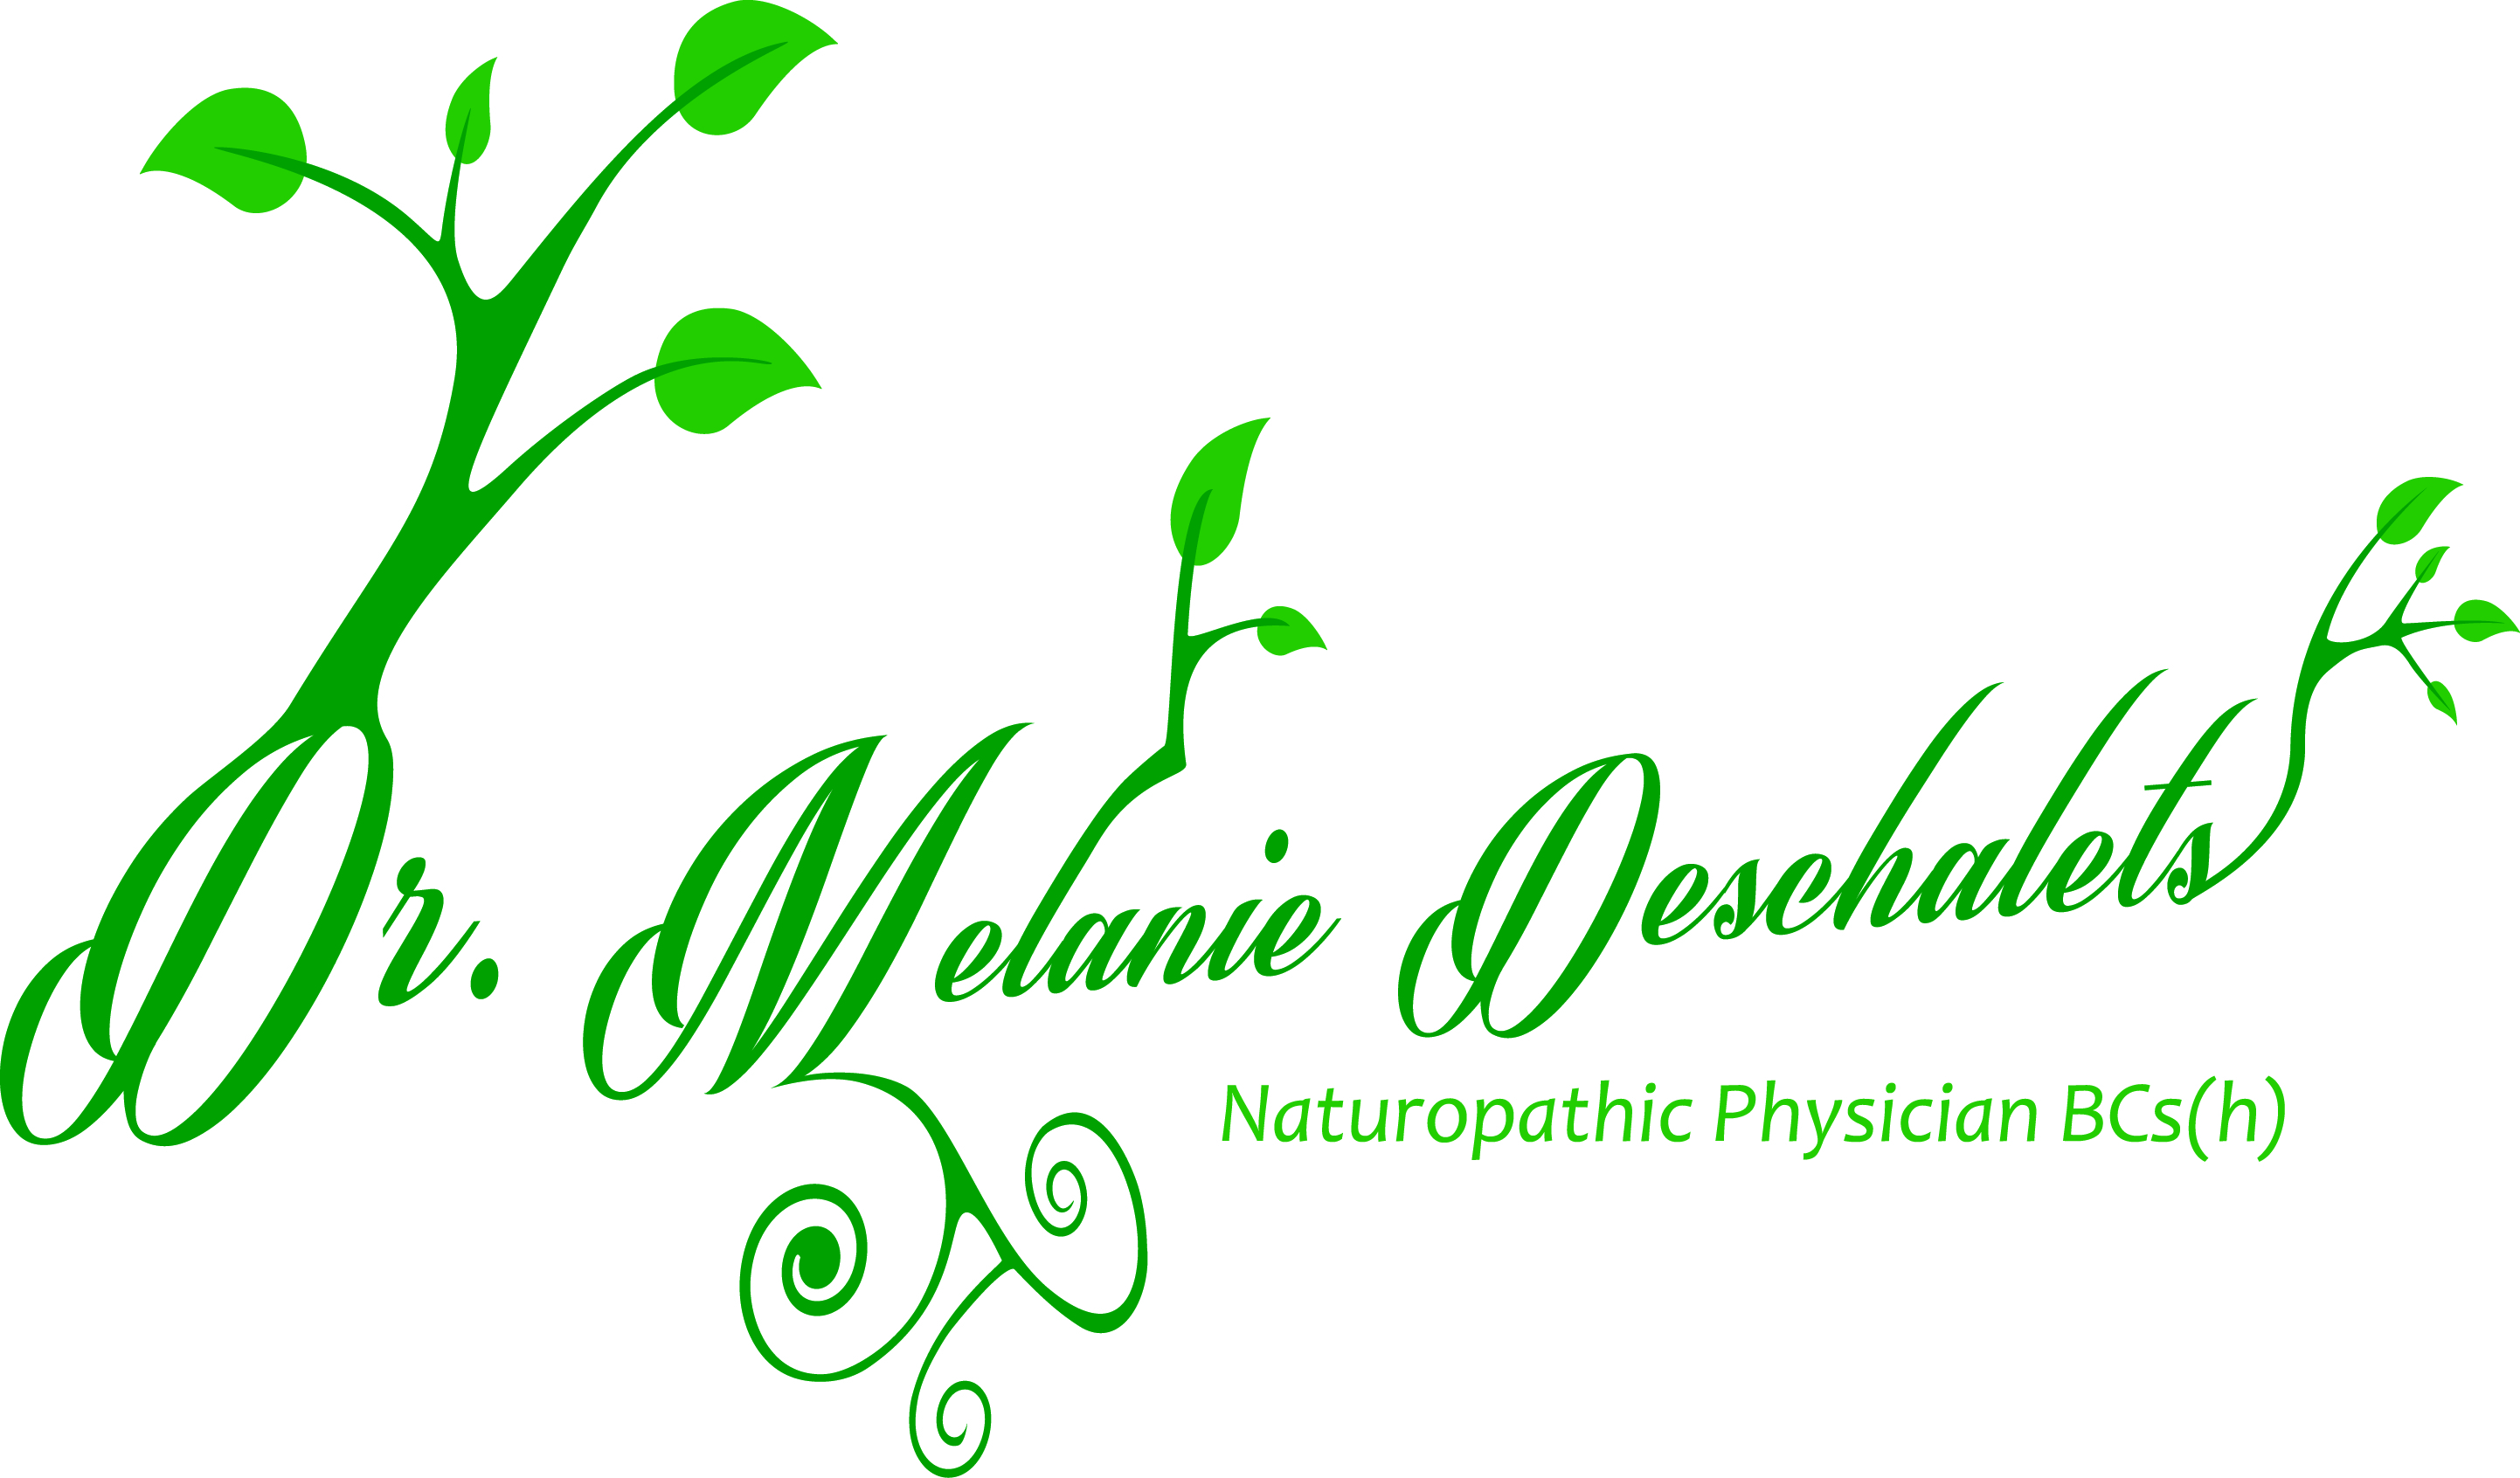 Logo Design by Vivek Singh - Entry No. 58 in the Logo Design Contest Artistic Logo Design for Dr Mélanie DesChâtelets.